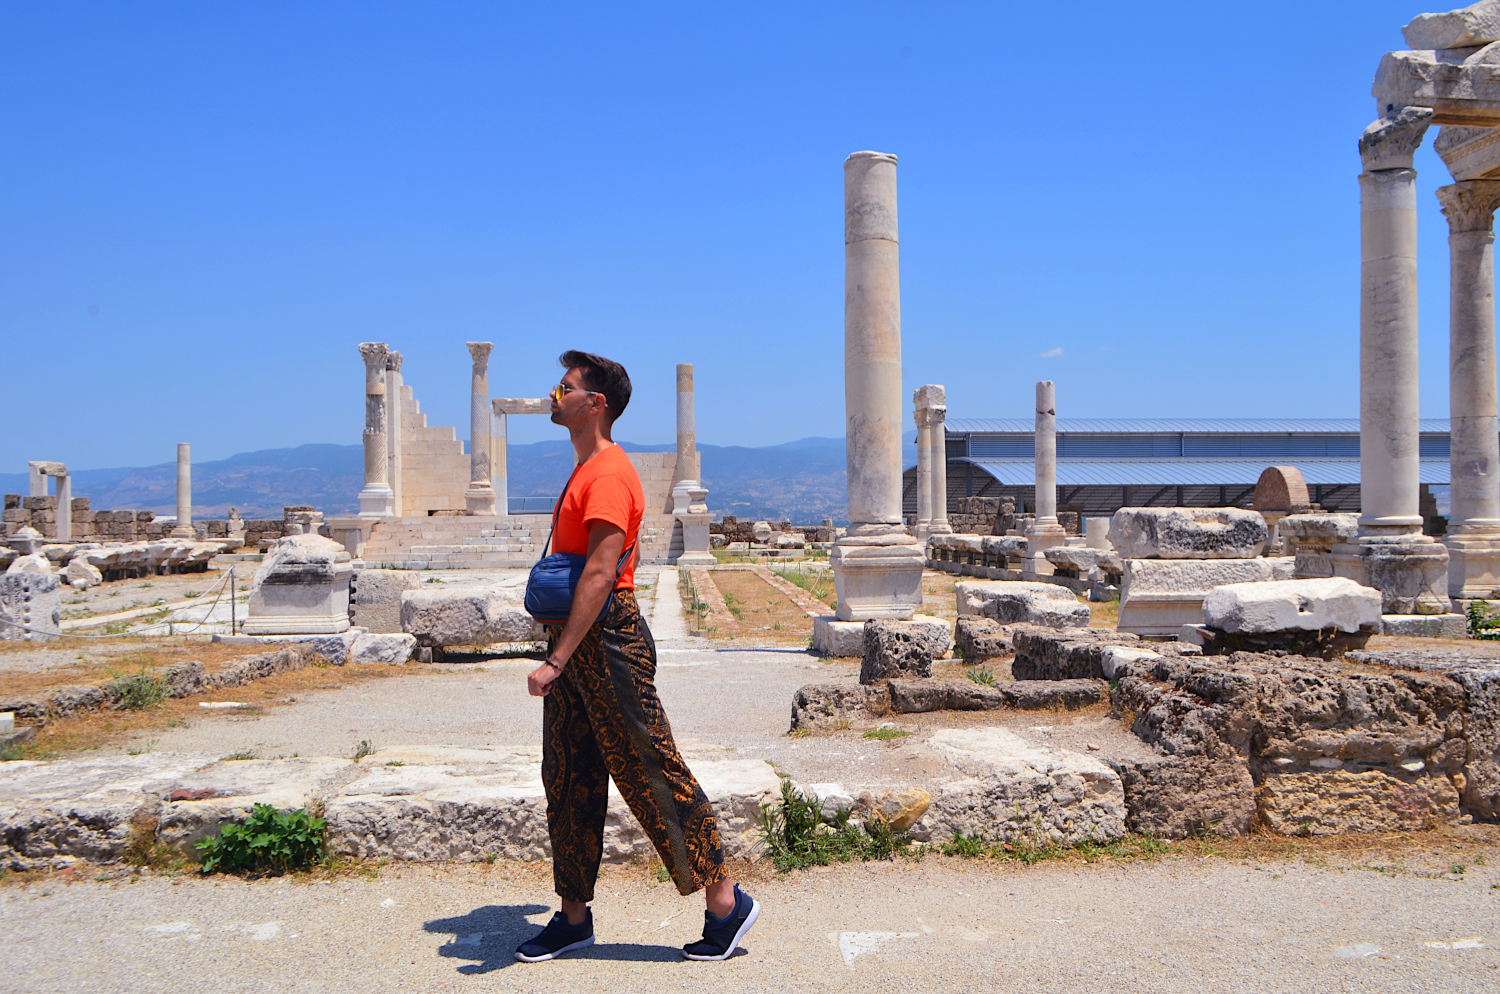 In Laodicea, they were famous for producing shiny black wool unique to this city. A fashion hub at the time.